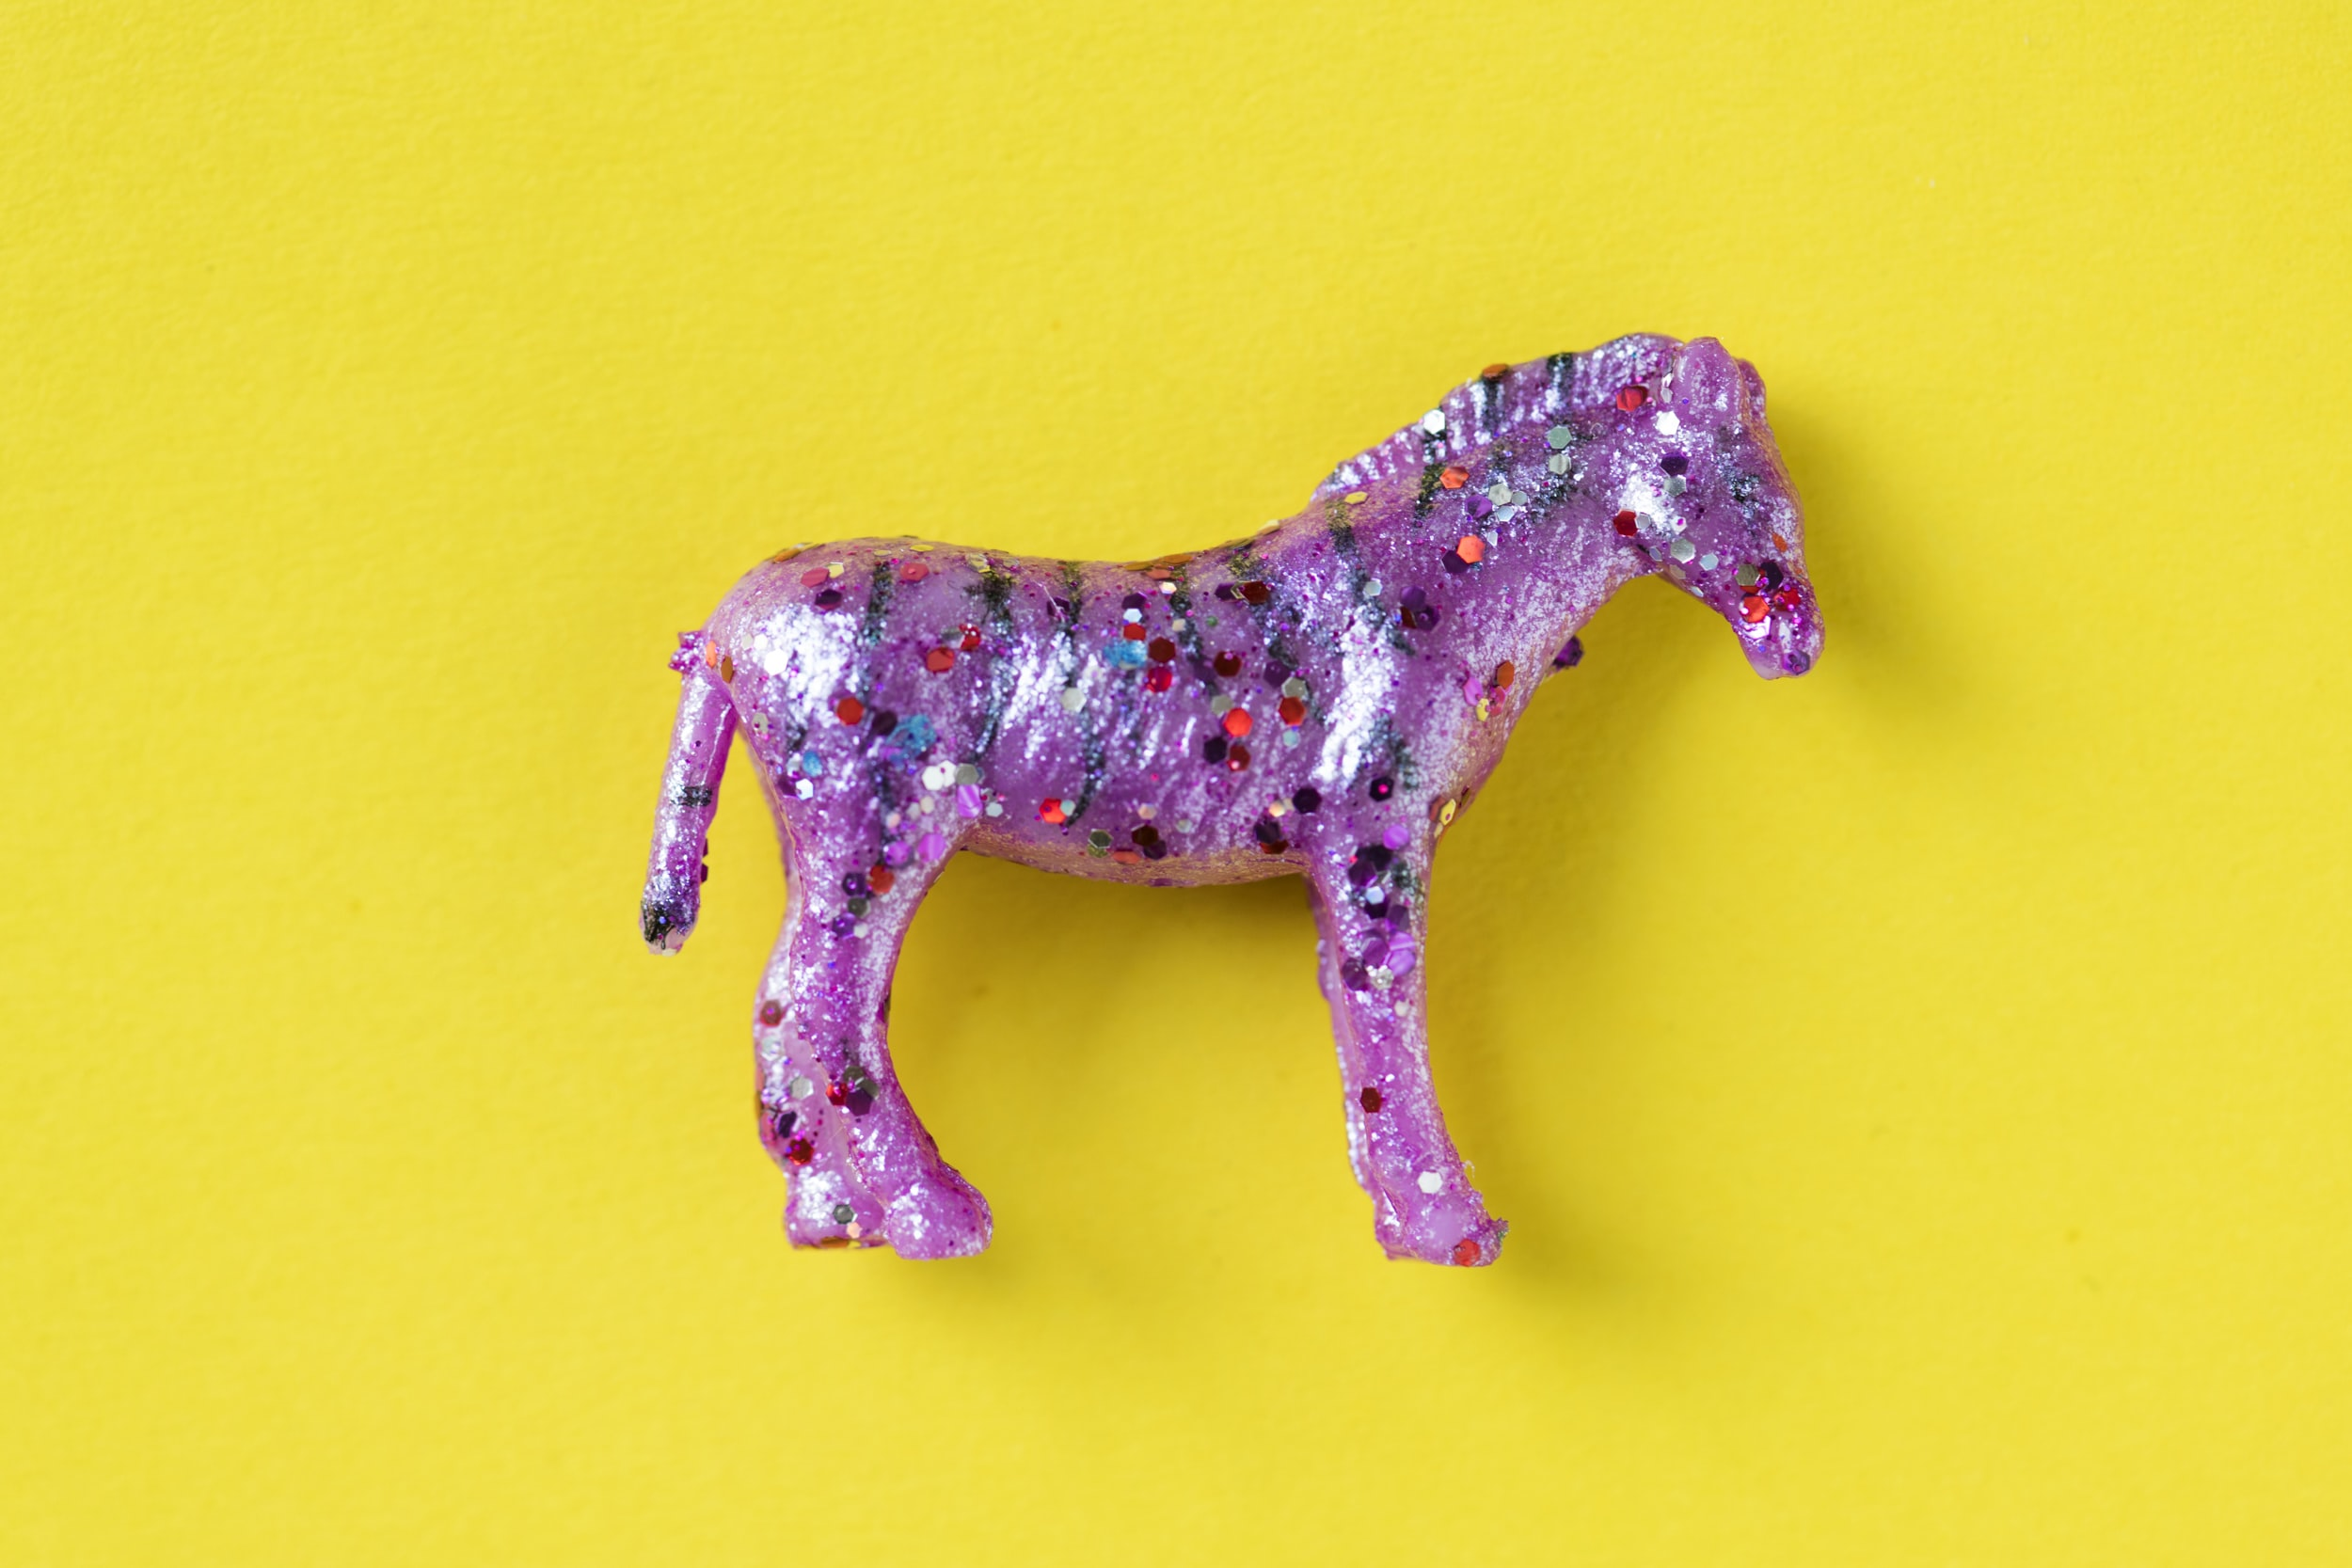 pink horse figurine on yellow surface